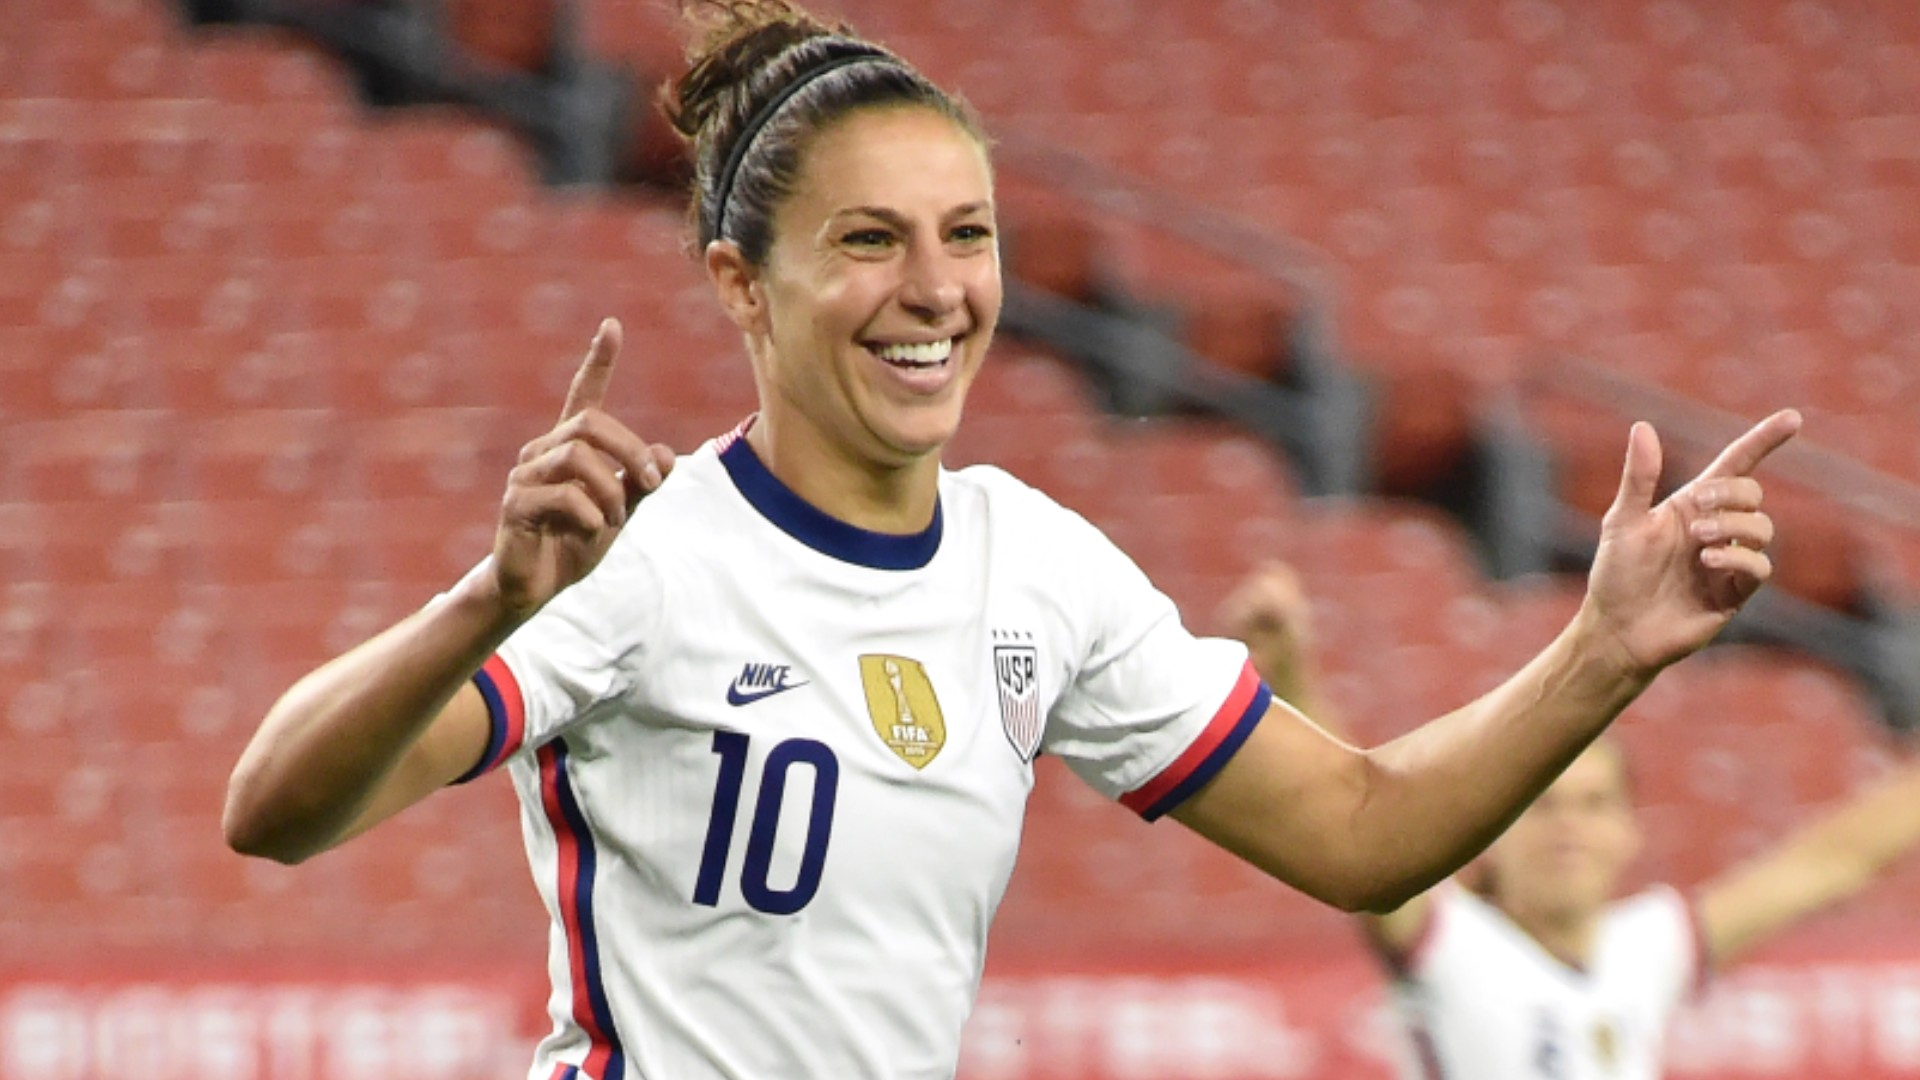 USWNT vs. Paraguay result: Carli Lloyd scores five goals as USA romps to 9-0 win